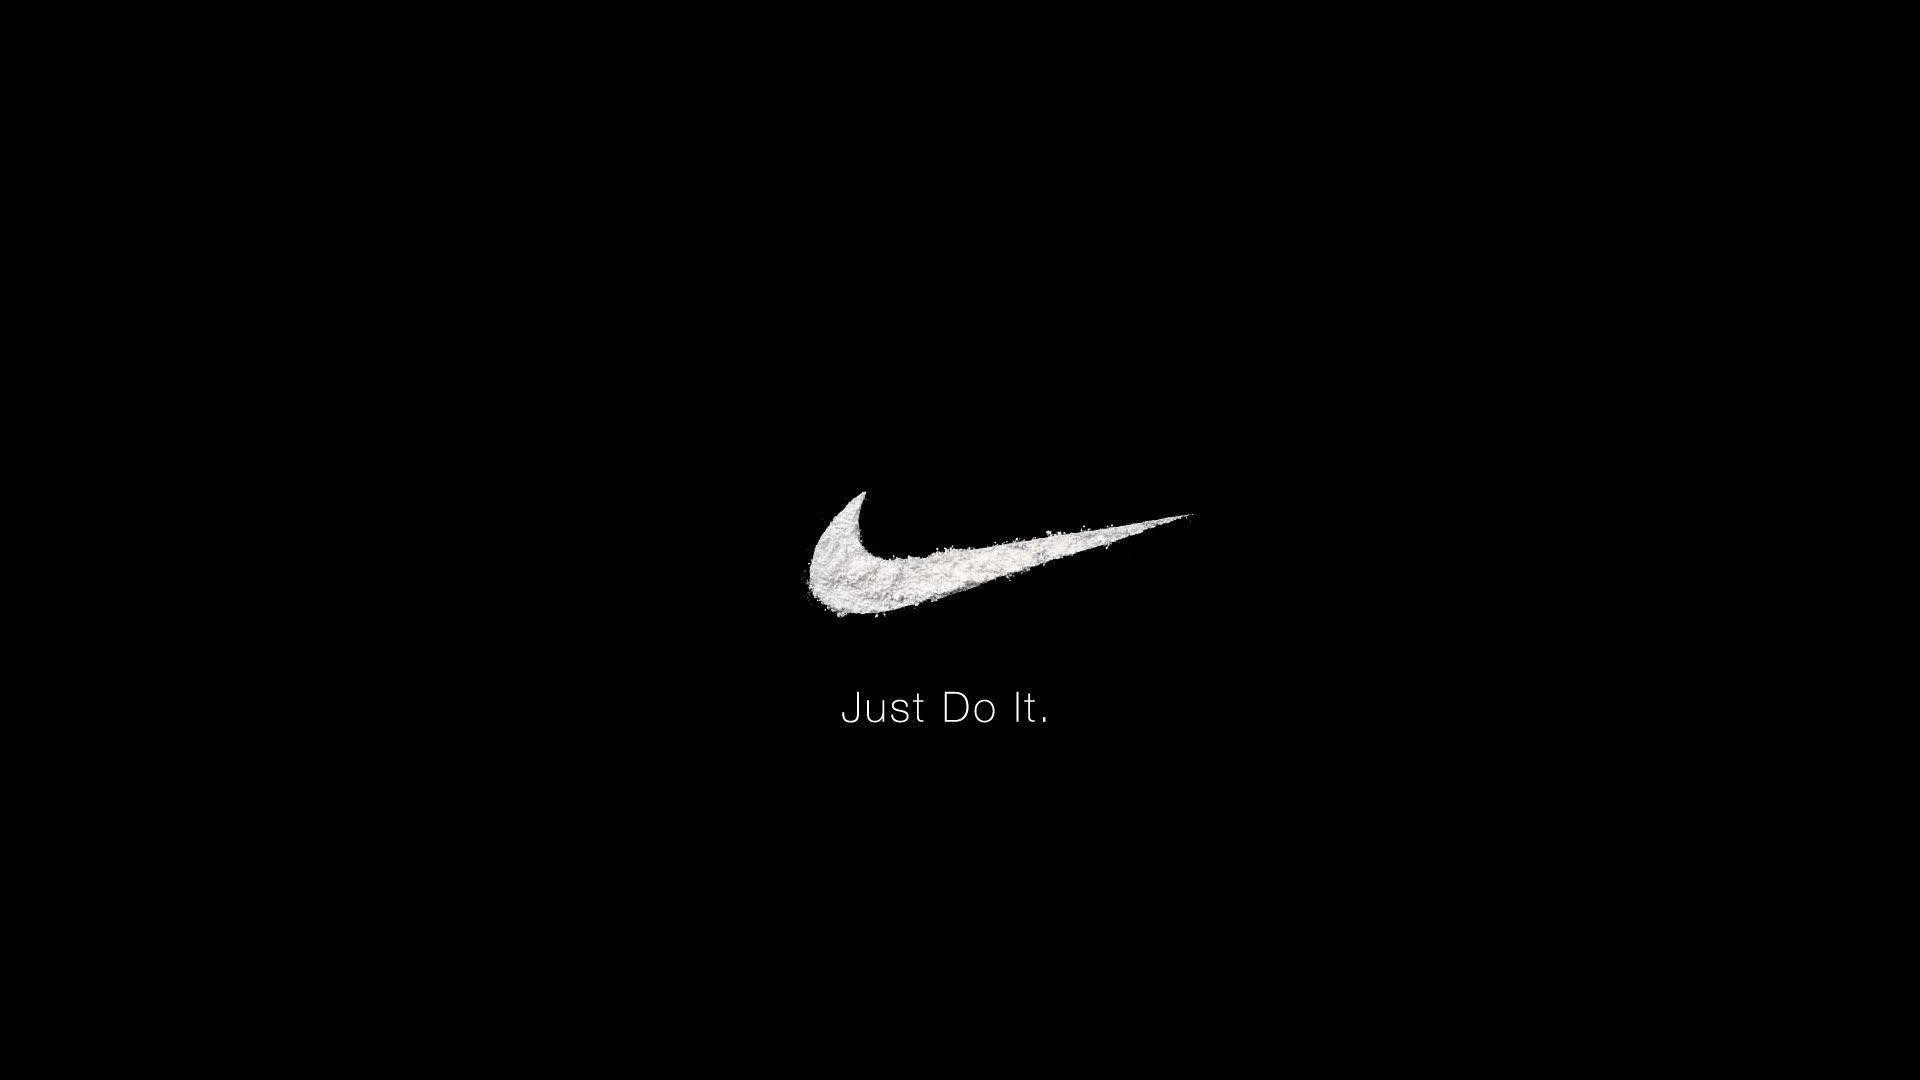 Wallpapers For > Nike Just Do It Wallpaper Pink